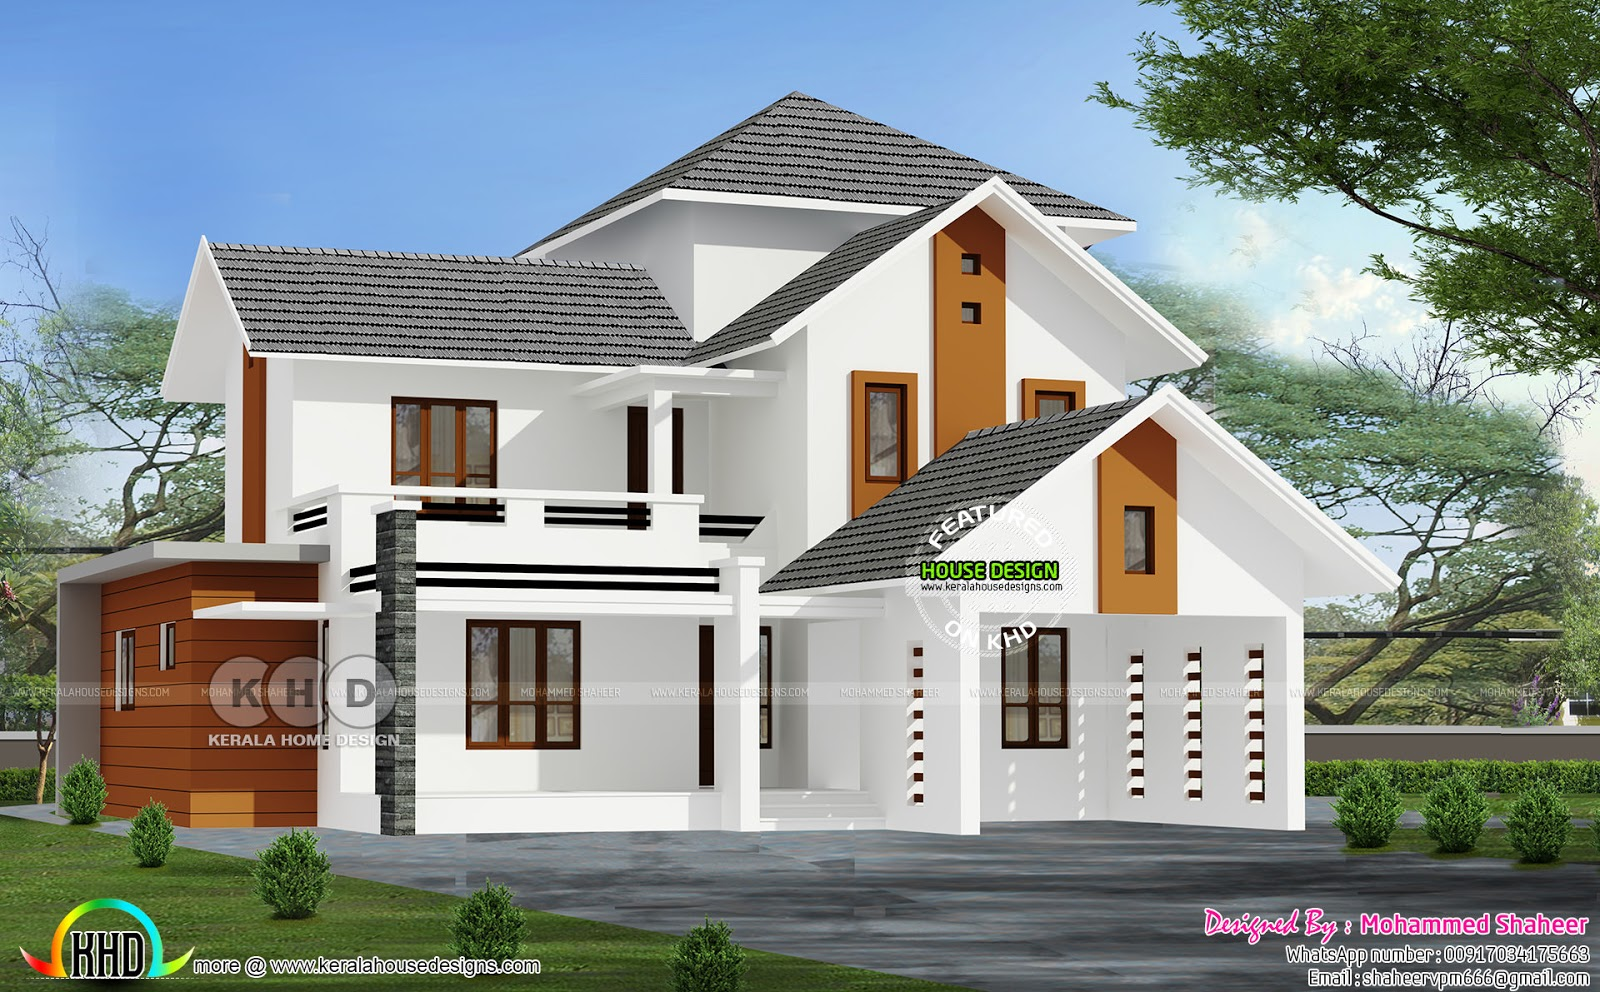 Sloping roof 3000 sq ft house with 4 bedrooms kerala for 3000 sq ft house plans kerala